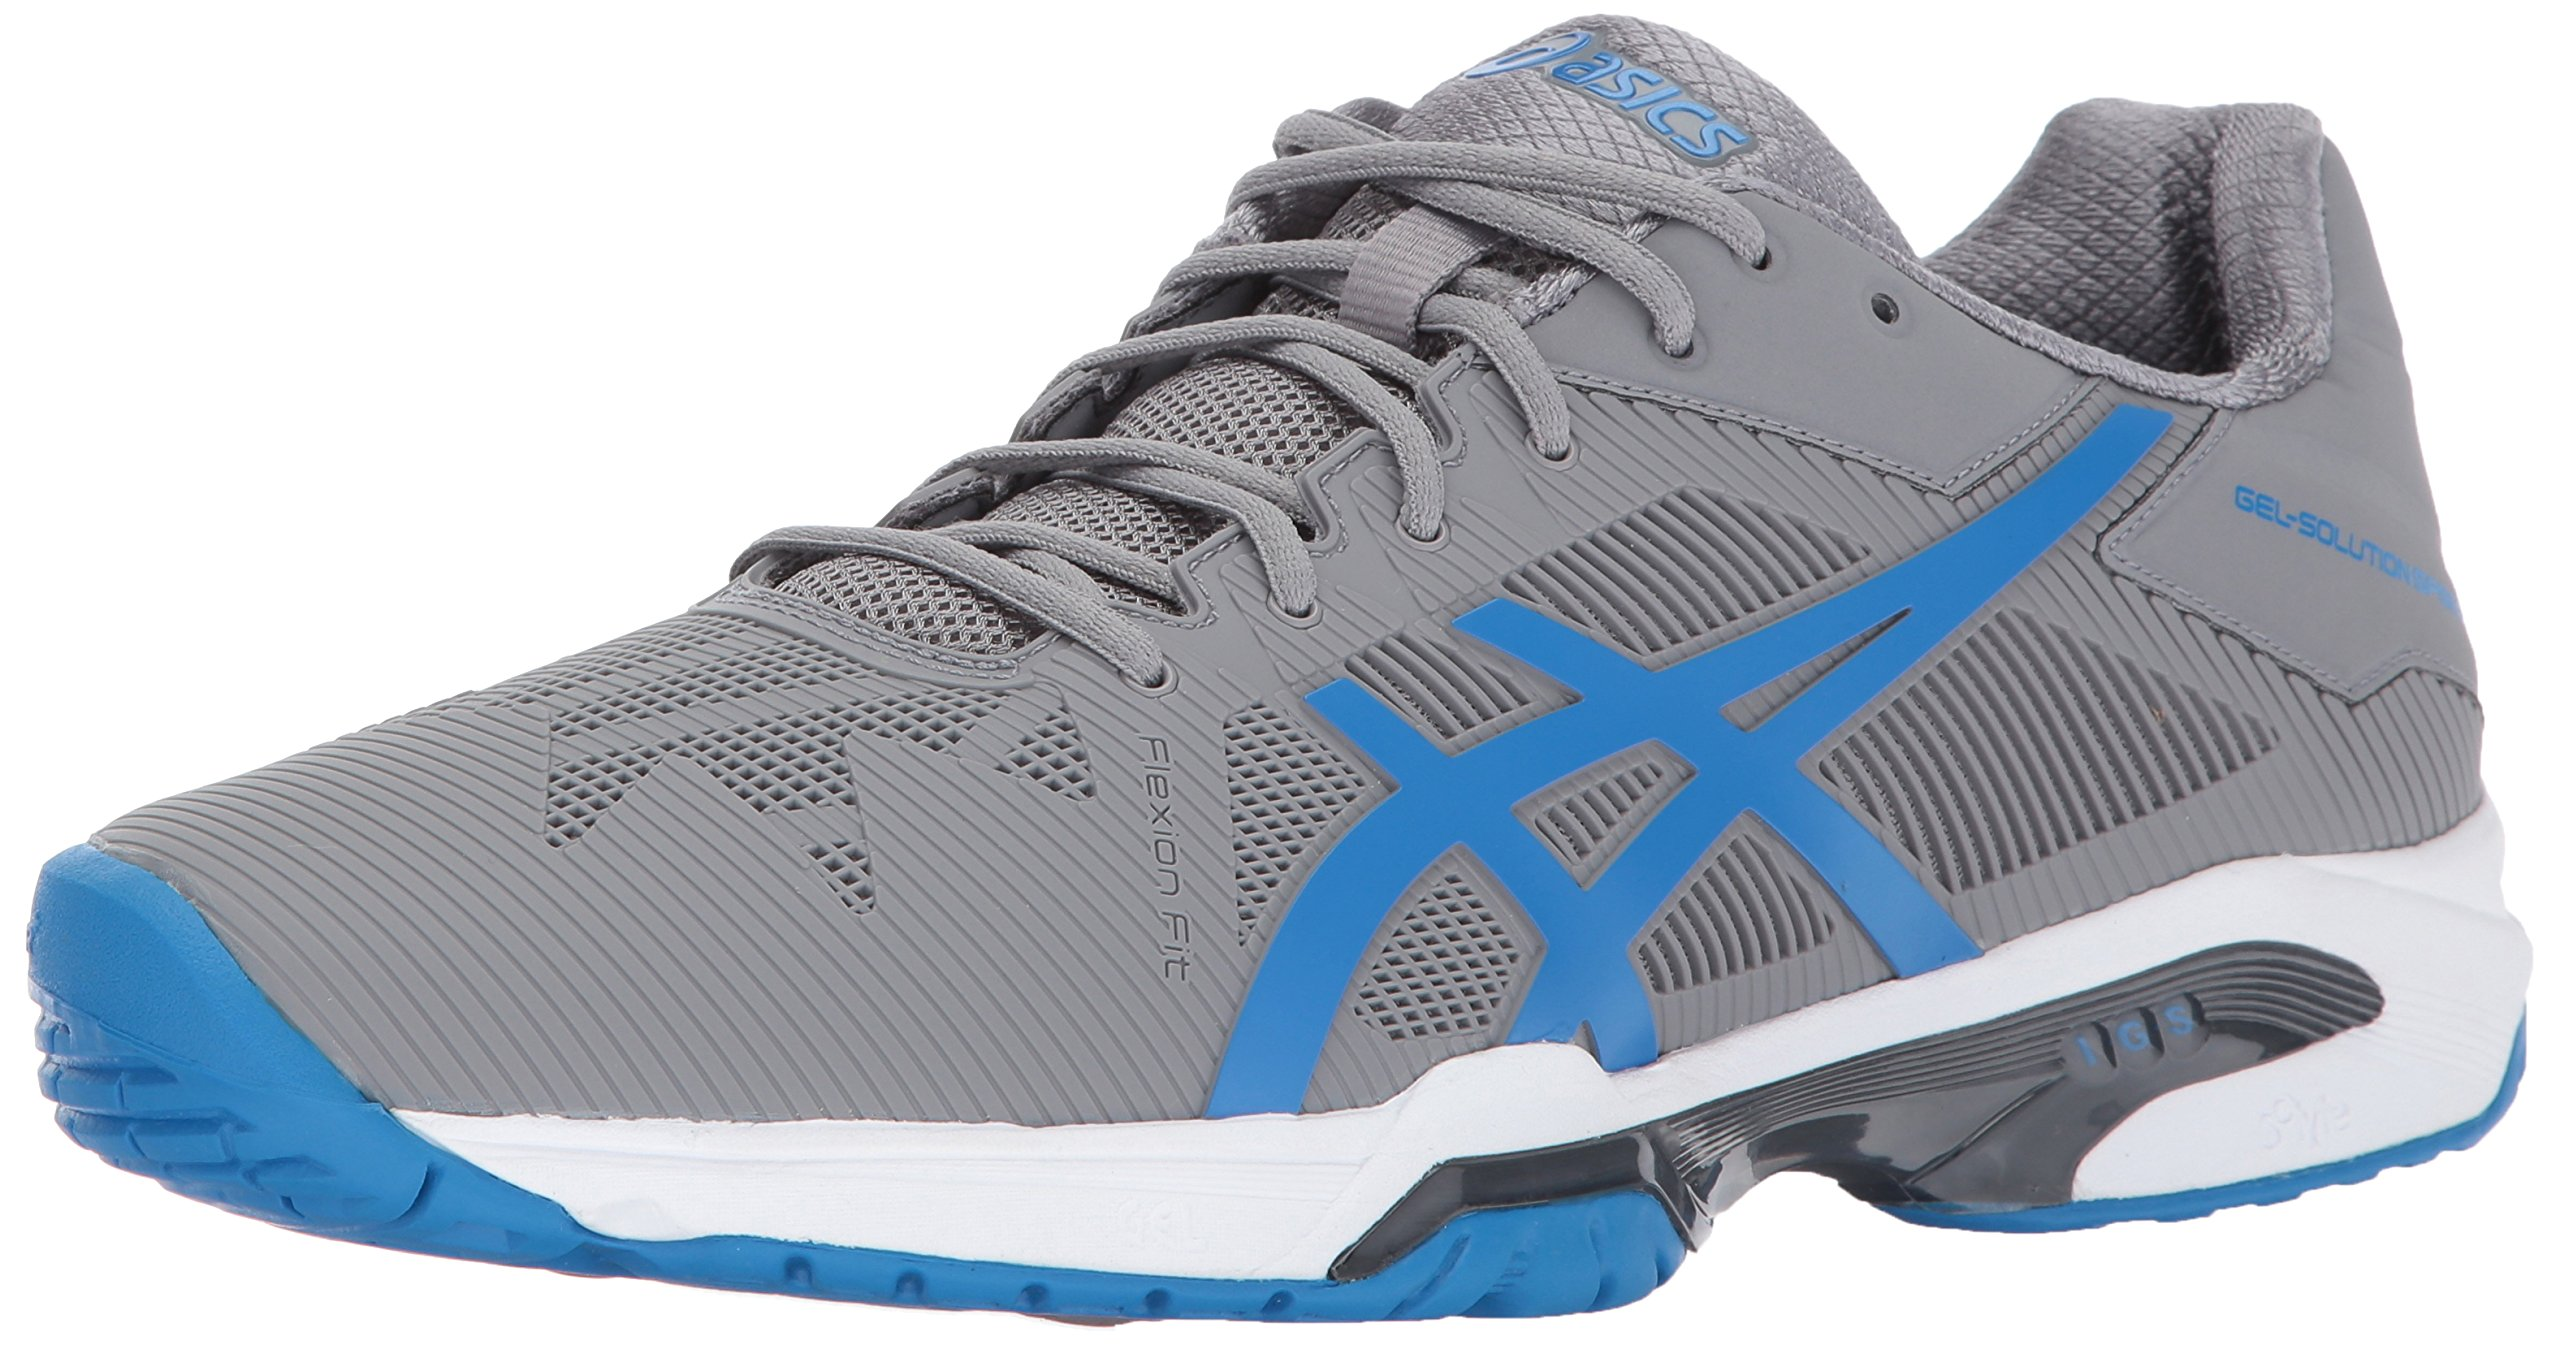 ASICS Men's Gel-Solution Speed 3 Tennis Shoe, Aluminum/Electric Blue/White, 10.5 Medium US by ASICS